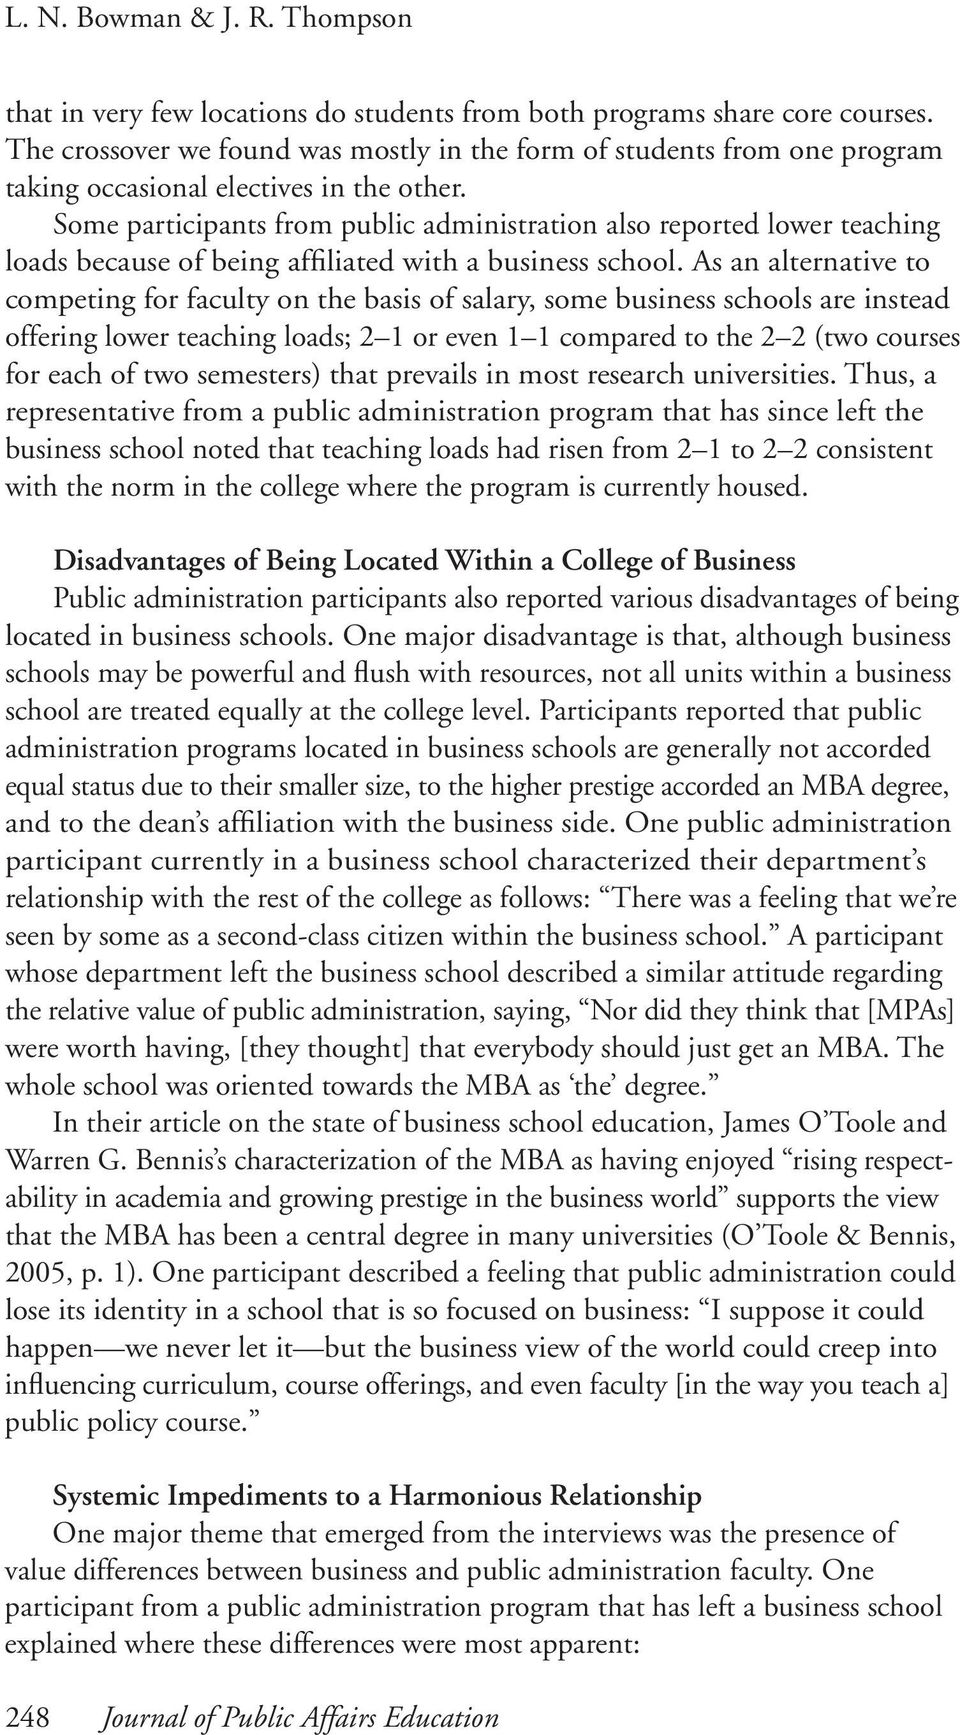 Some participants from public administration also reported lower teaching loads because of being affiliated with a business school.